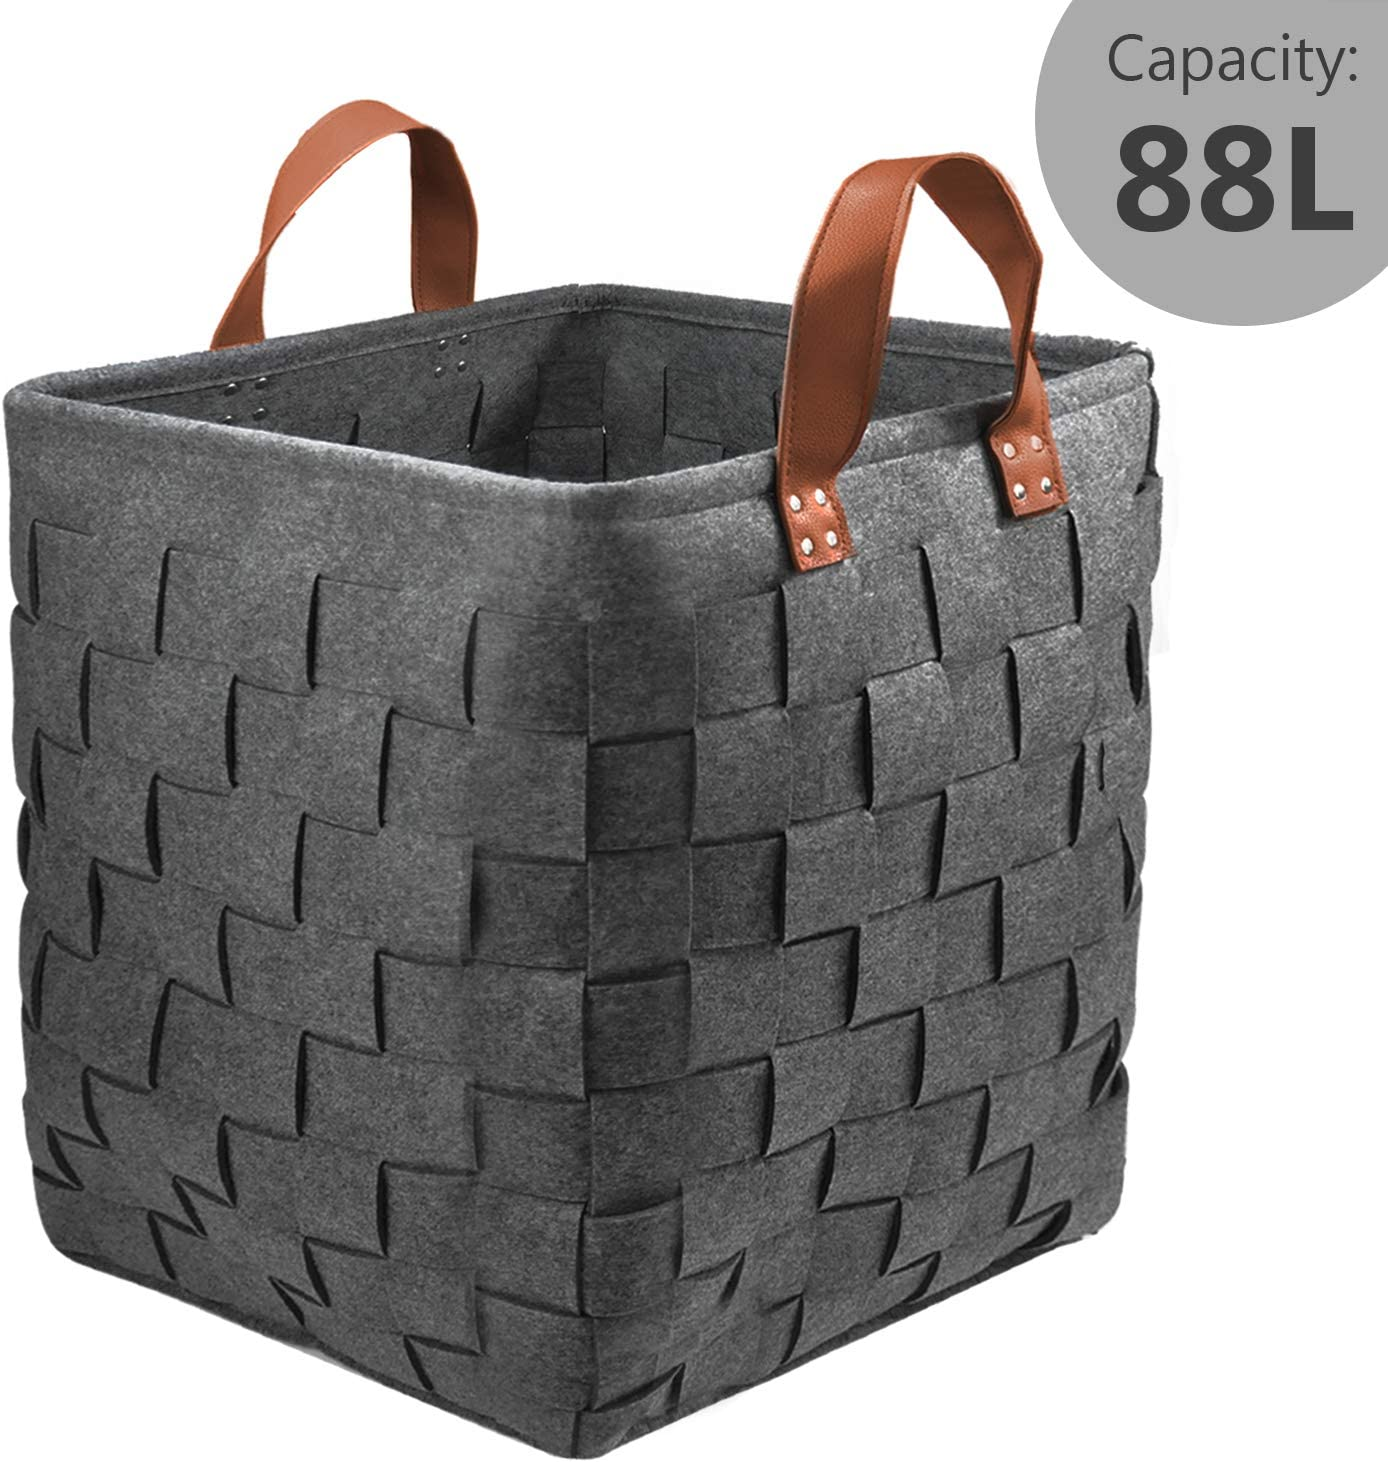 """GOHOME Extra Large Storage Baskets, Felt Organizer Storage Bin for Clothes, Blankets, Towels, Sofa Throws, Toys or Nursery, Large Decorative Laundry Hamper with Durable Handles(16.5""""x16.5""""x19.7""""/88L)"""